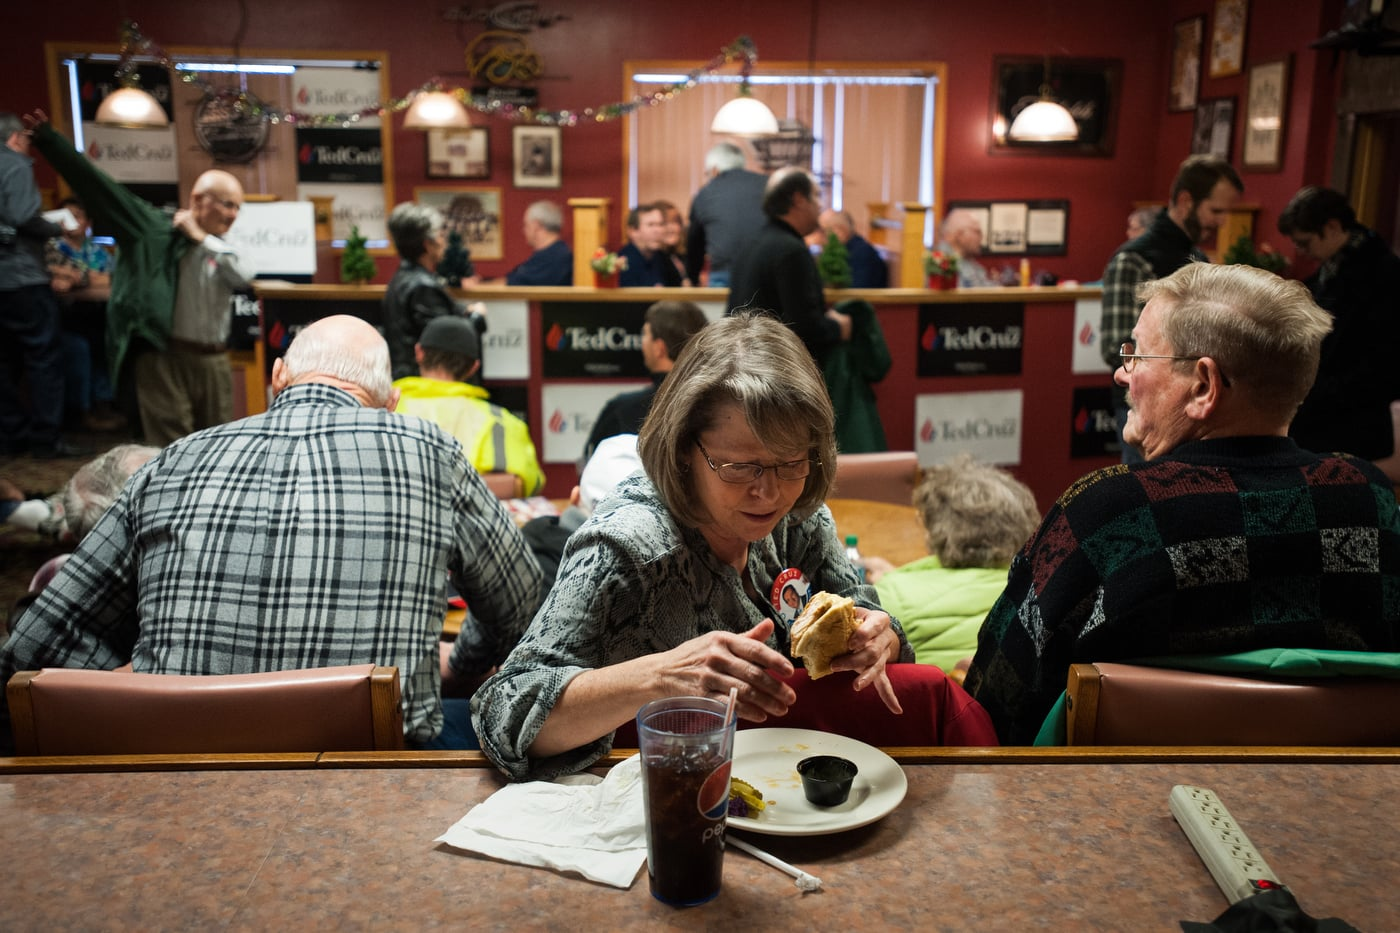 JoAnn Bieber eats lunch while waiting for U.S. Republican presidential candidate Ted Cruz' campaign stop at Danny's Sports Spot in Cherokee, Iowa January 5, 2016.